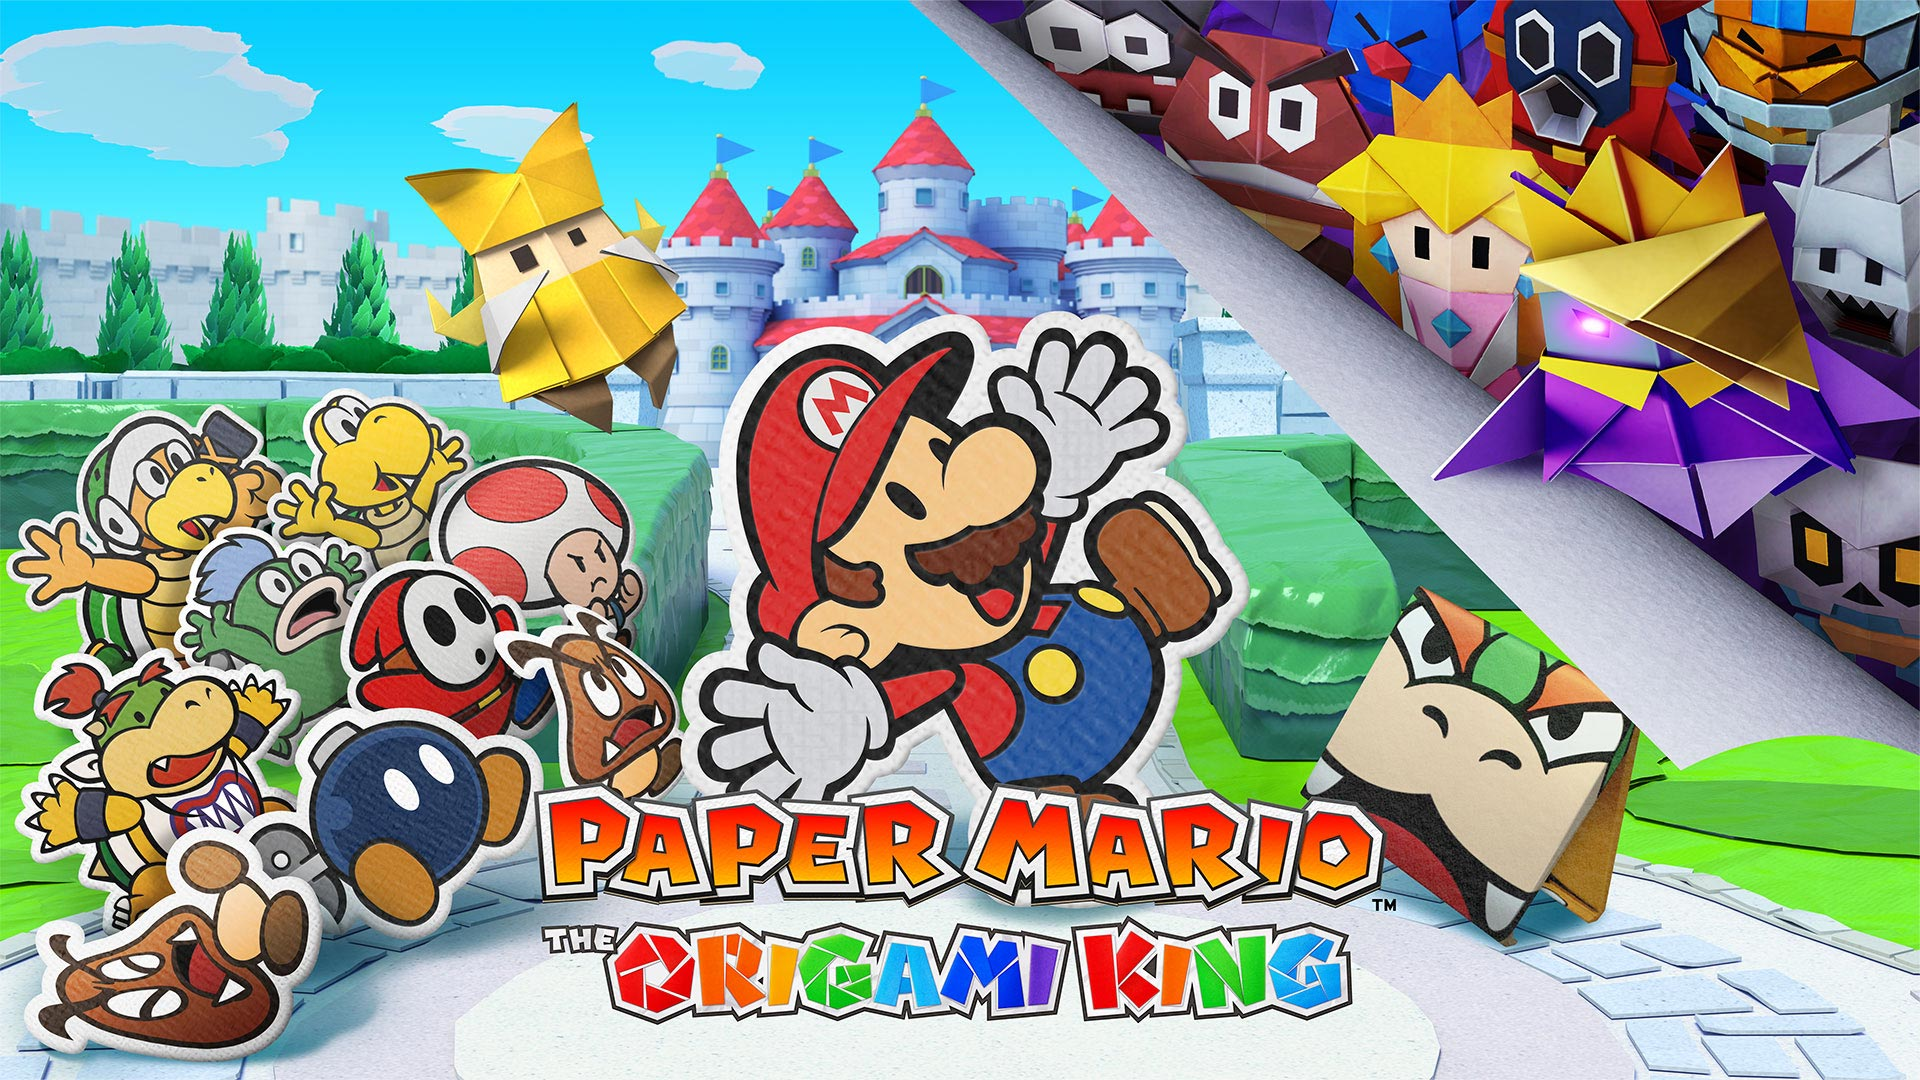 New 'Paper Mario' Will Be Released This July in Nintendo Switch - The Geek Herald